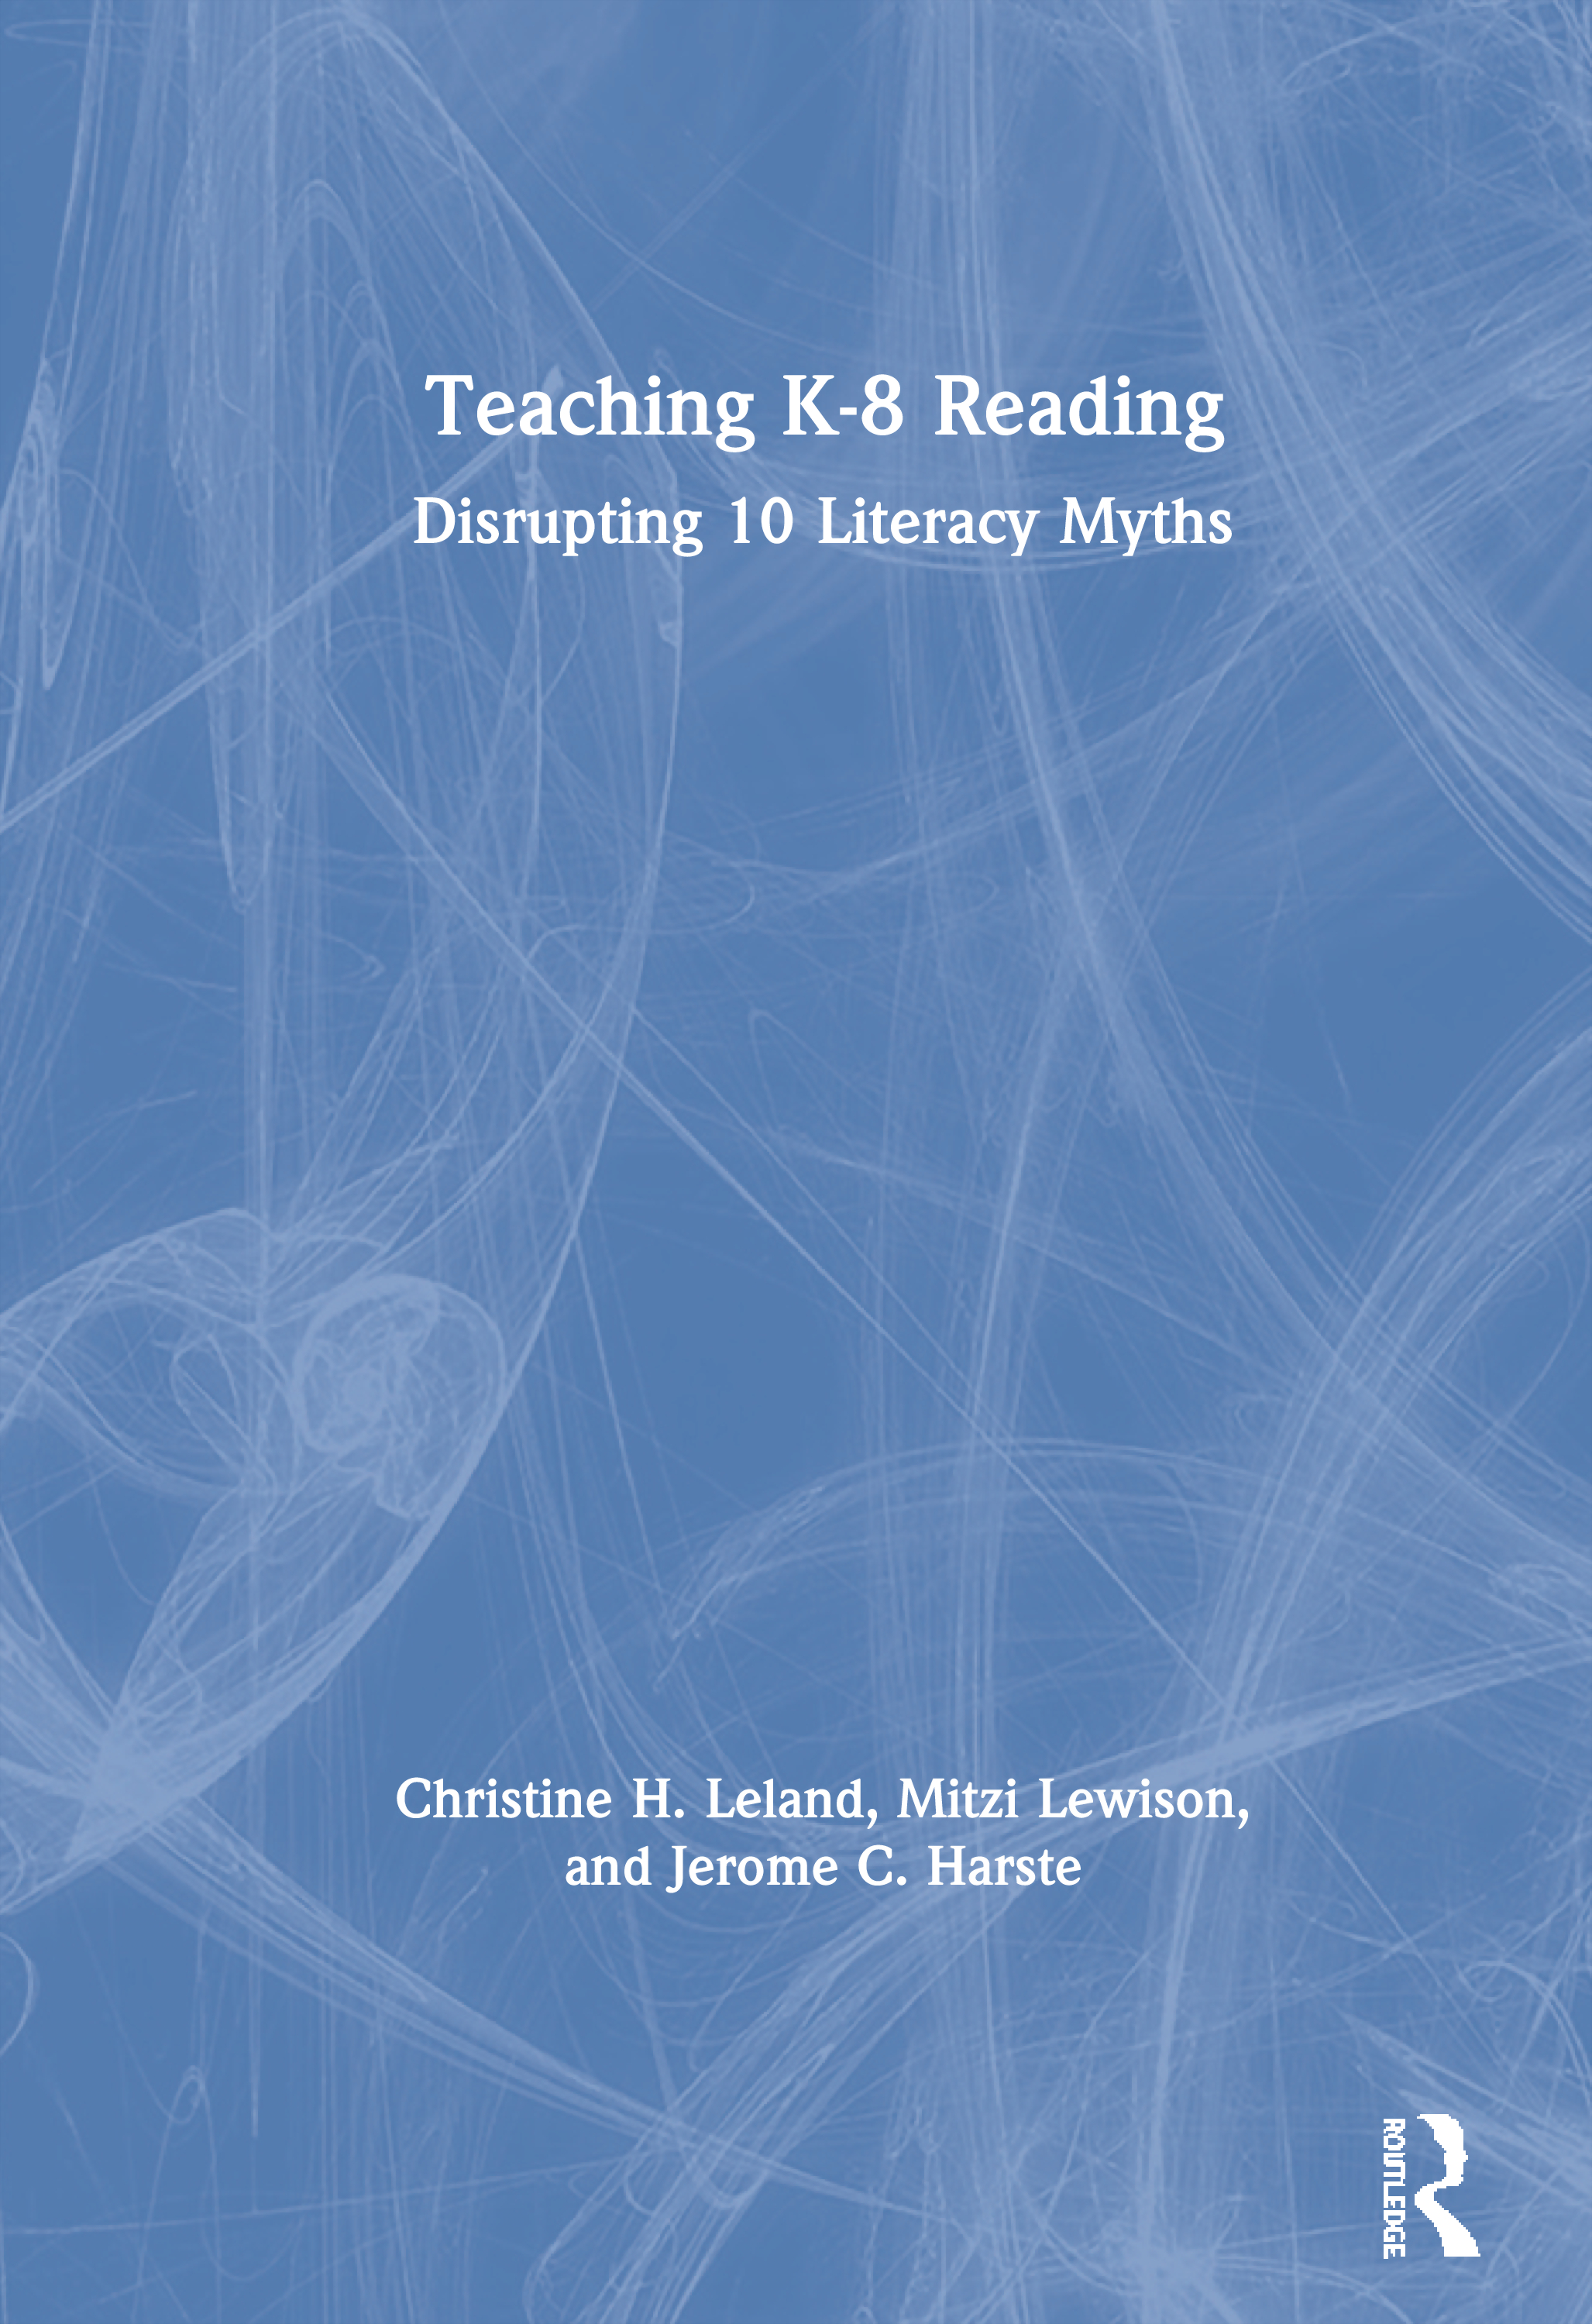 Teaching K-8 Reading: Disrupting 10 Literacy Myths, 1st Edition (Paperback) book cover